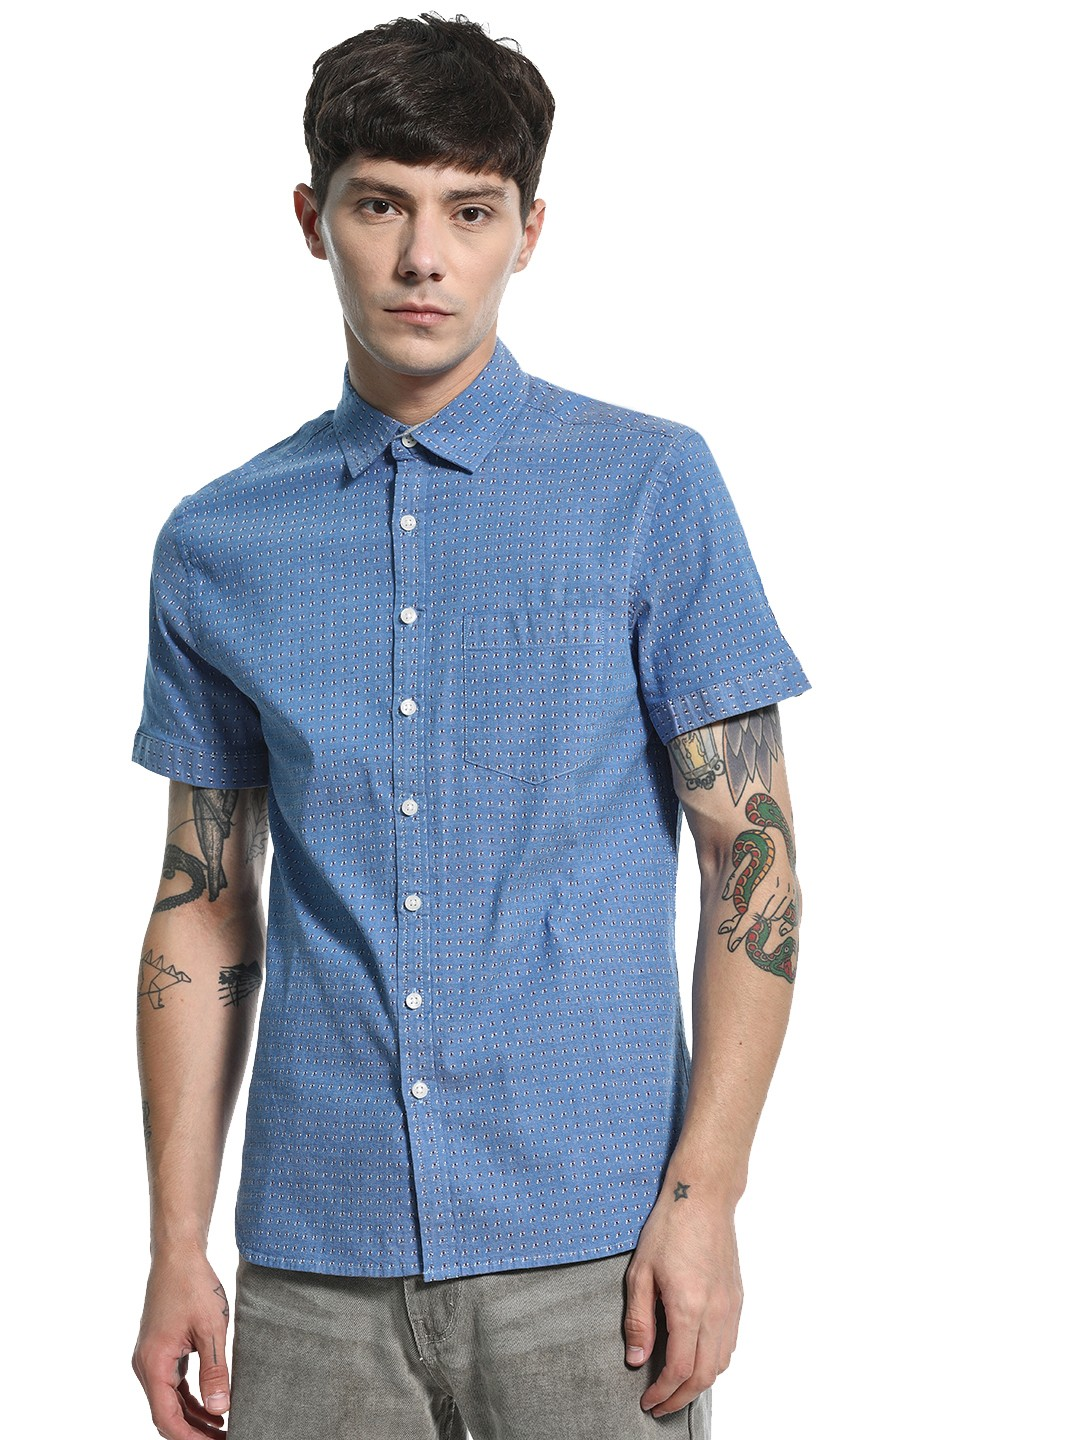 Kenneth Cole Blue All Over Print Chambray Shirt 1